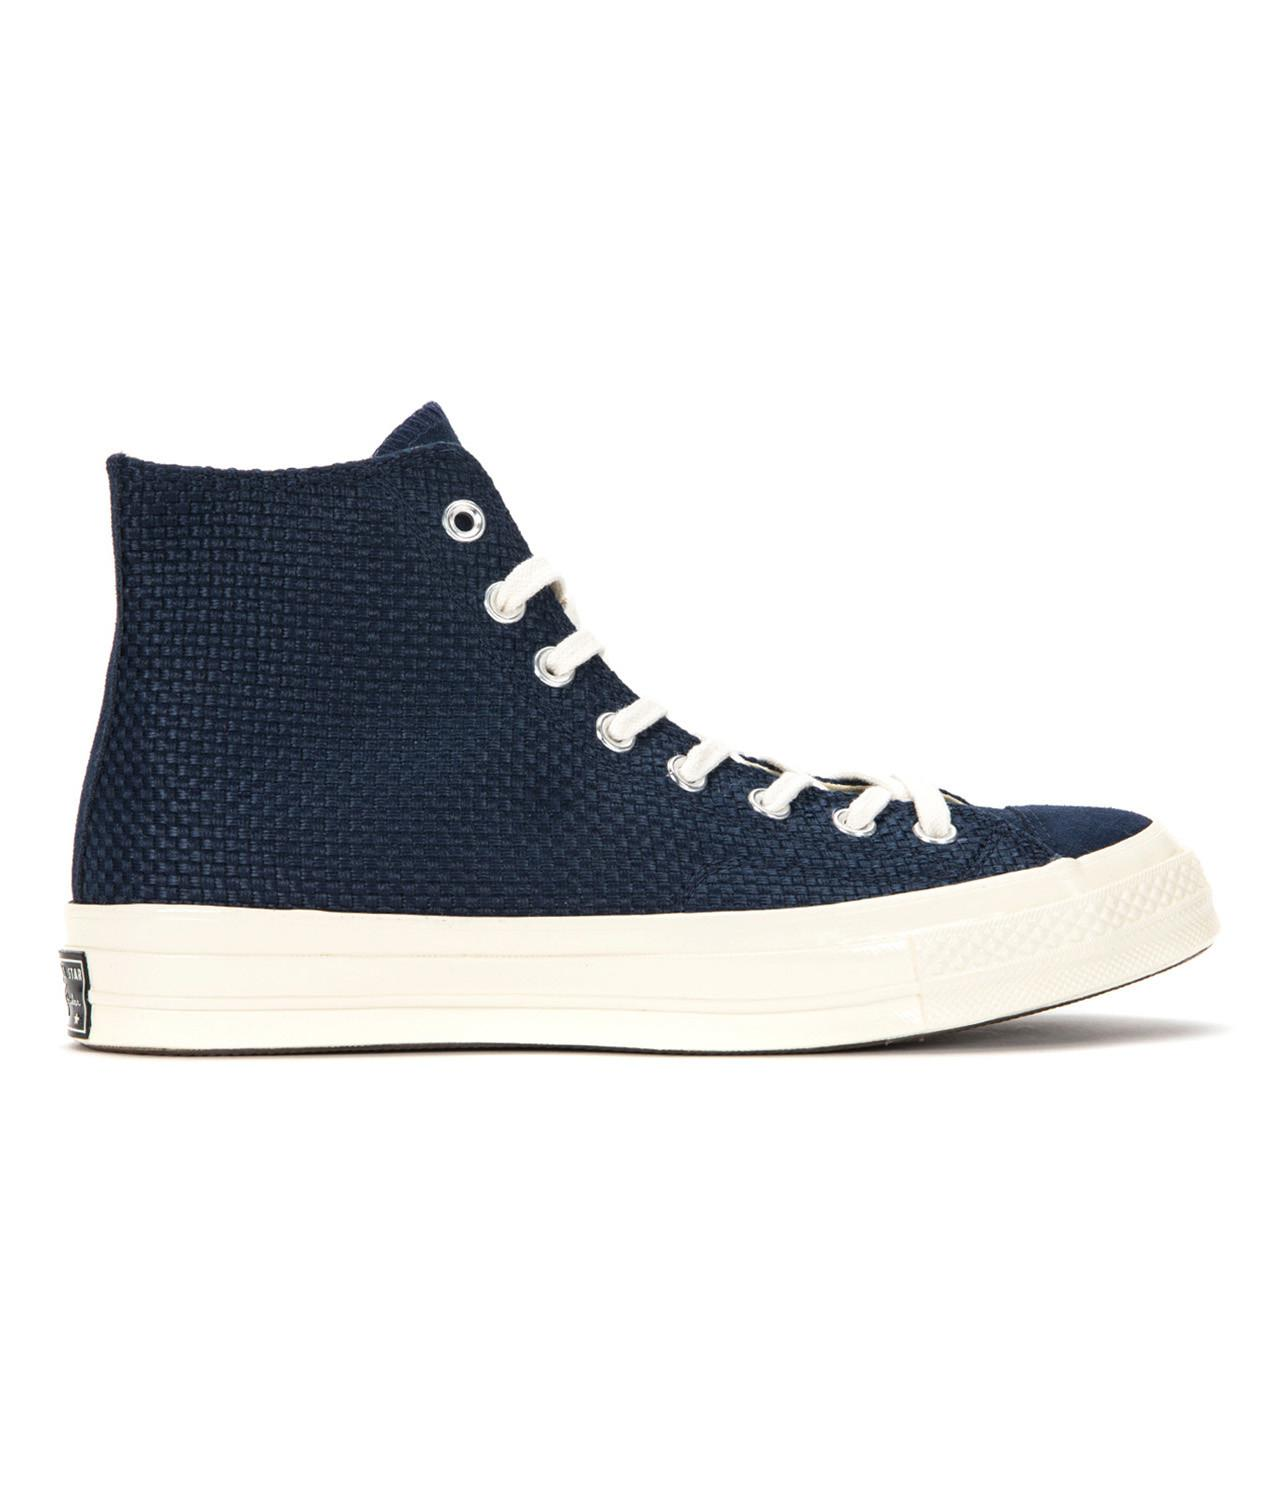 Lyst - Converse Chuck Taylor All Star 70 Hi in Blue for Men 9323d8ed9